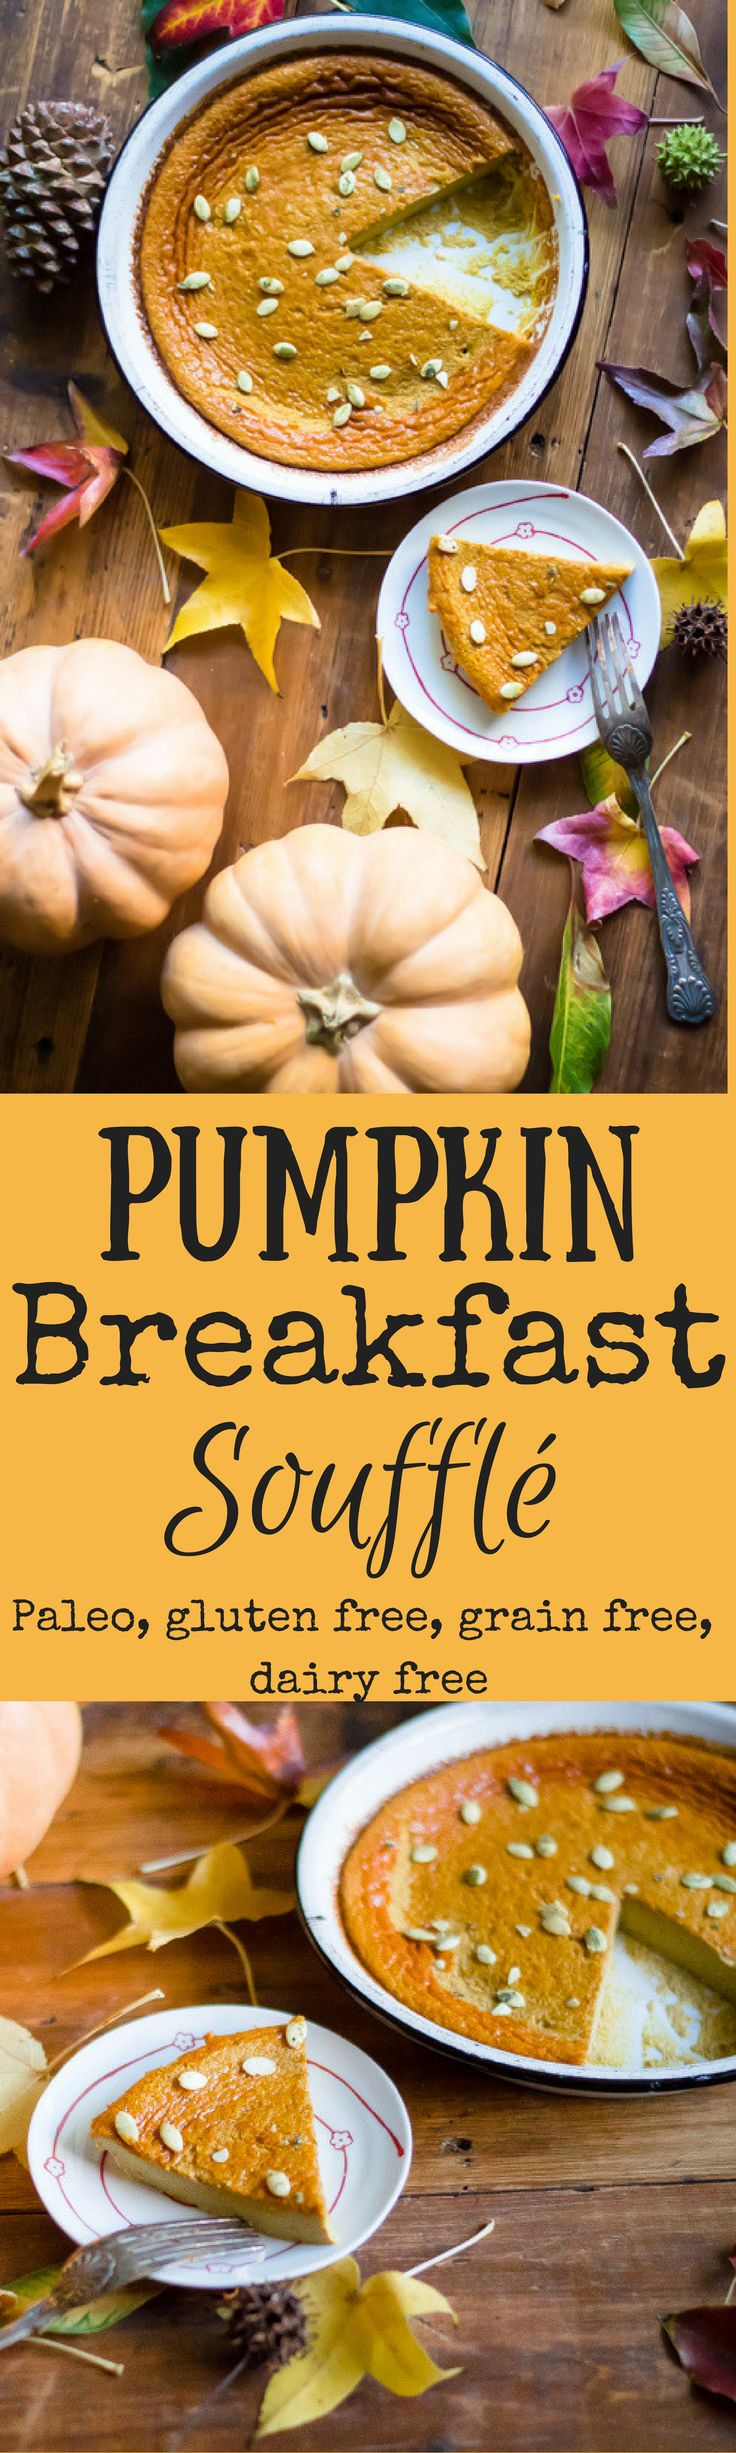 Pumpkin takes center stage for many amazing fall desserts, but it can also be a part of healthy start to your day at the breakfast table. This Pumpkin Breakfast Soufflé is an easy, delicious and nourishing recipe that will have you feeling all the yummy fall feels first thing in the morning. Paleo, gluten free, dairy free, grain free